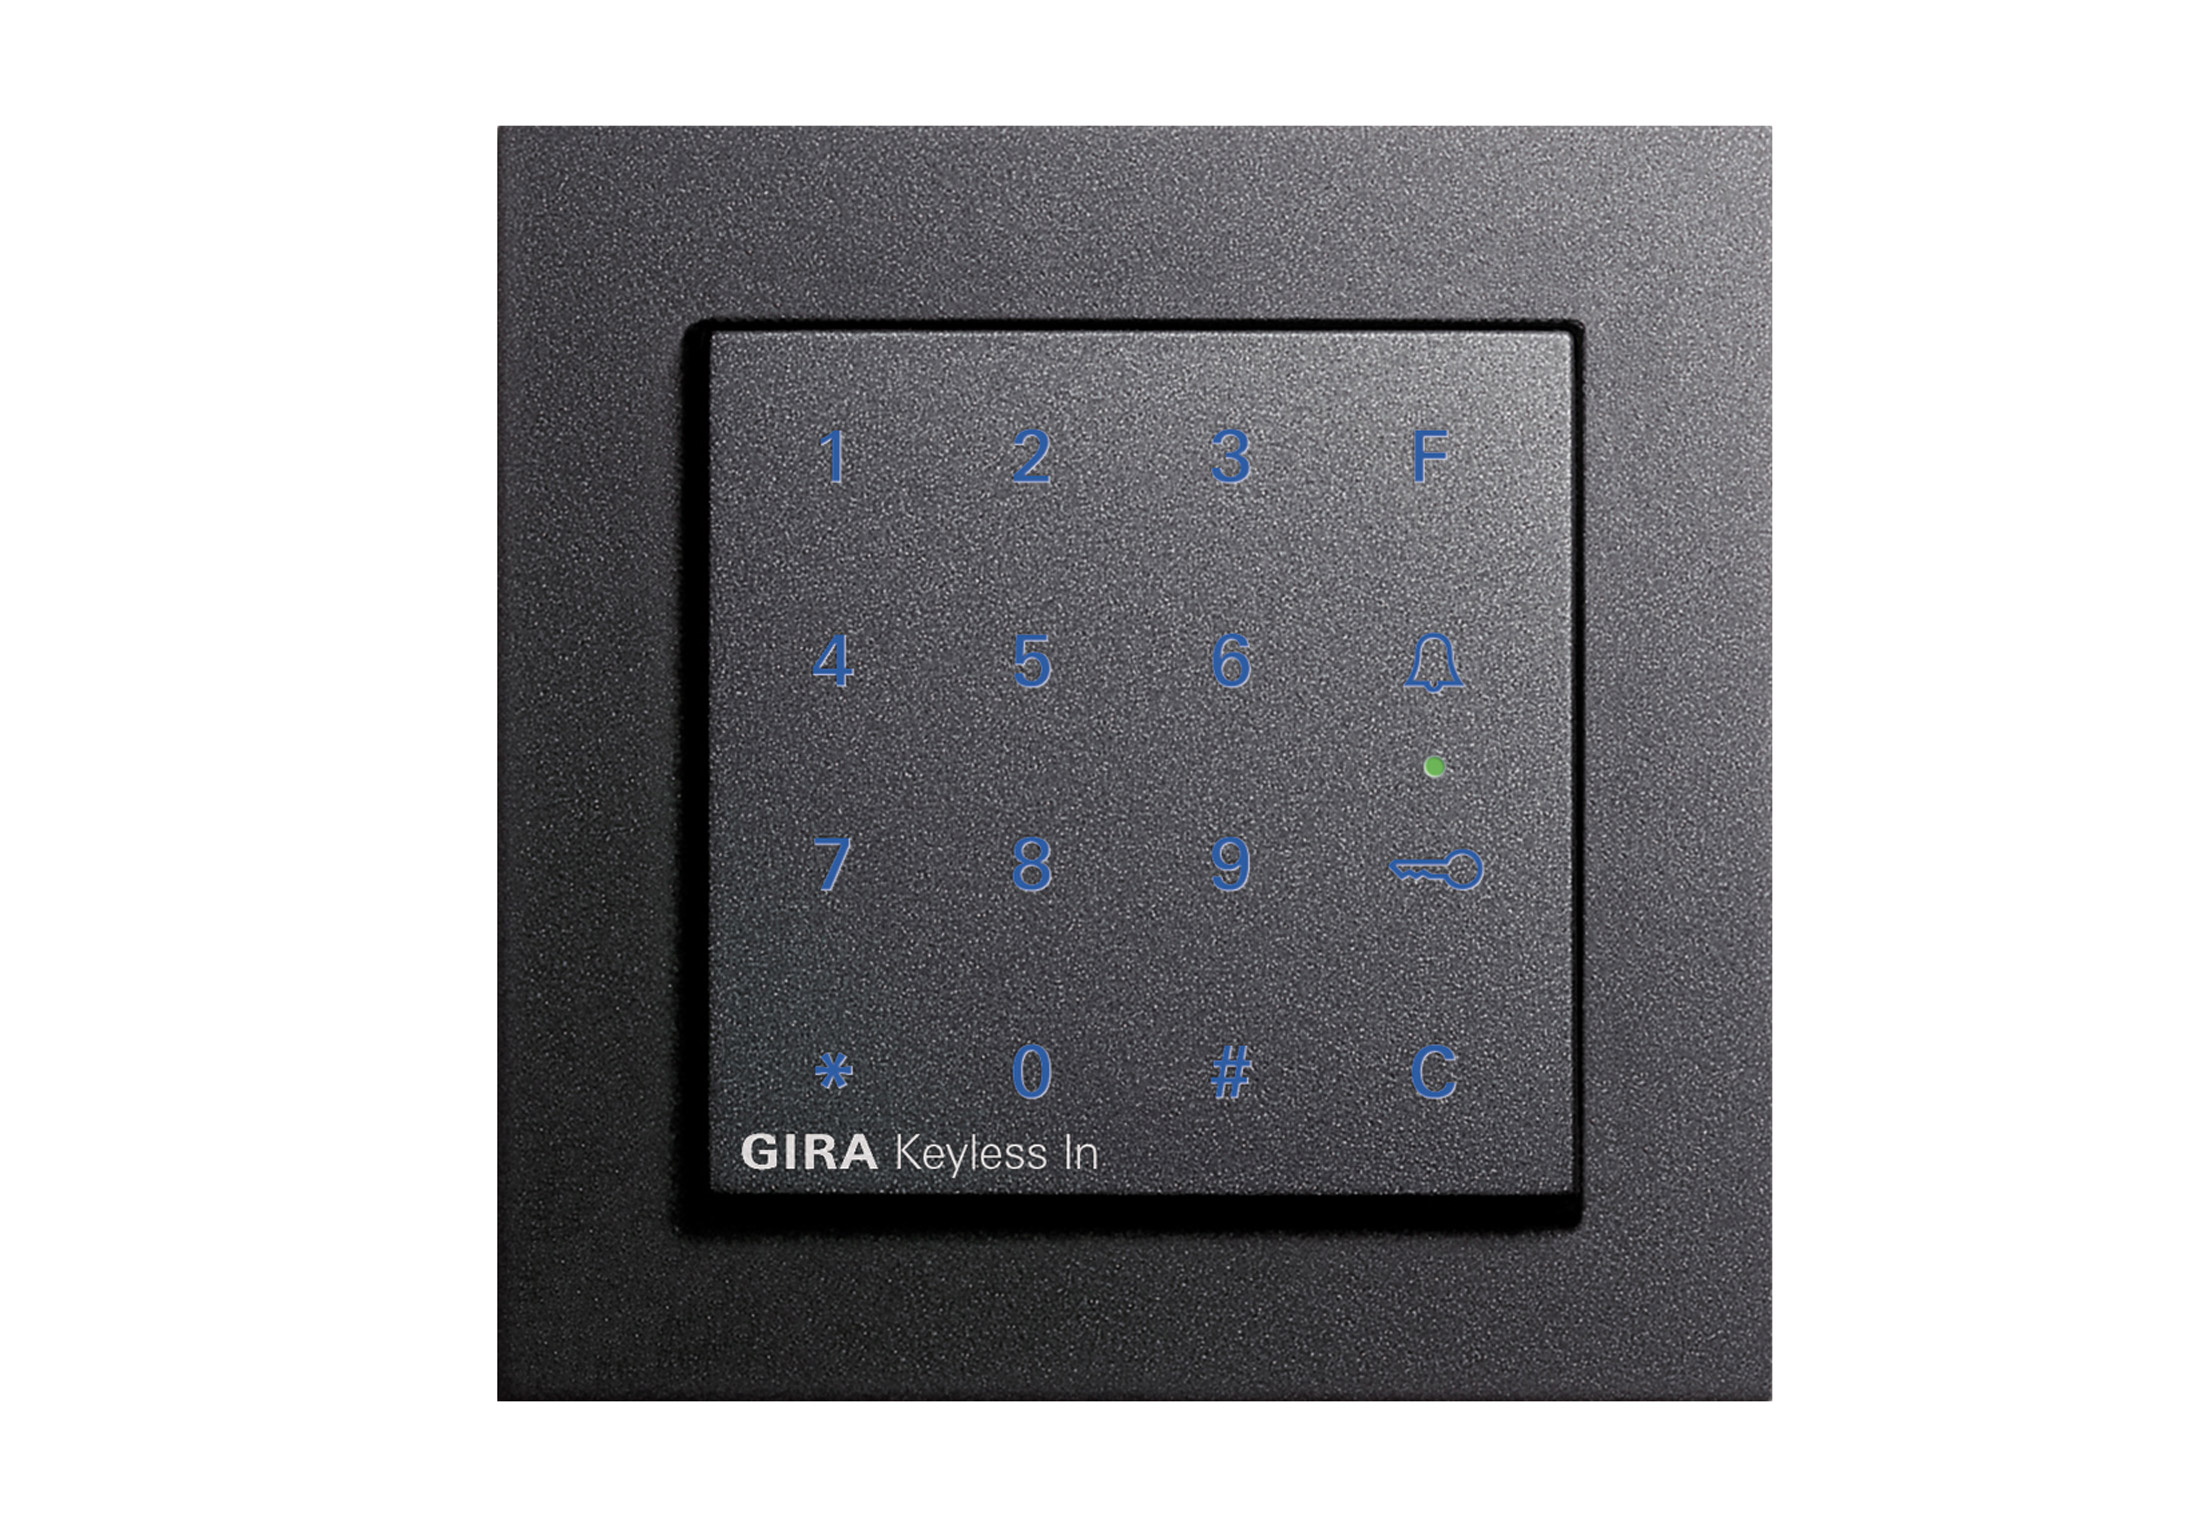 e2 keyless in codetastatur von gira stylepark. Black Bedroom Furniture Sets. Home Design Ideas